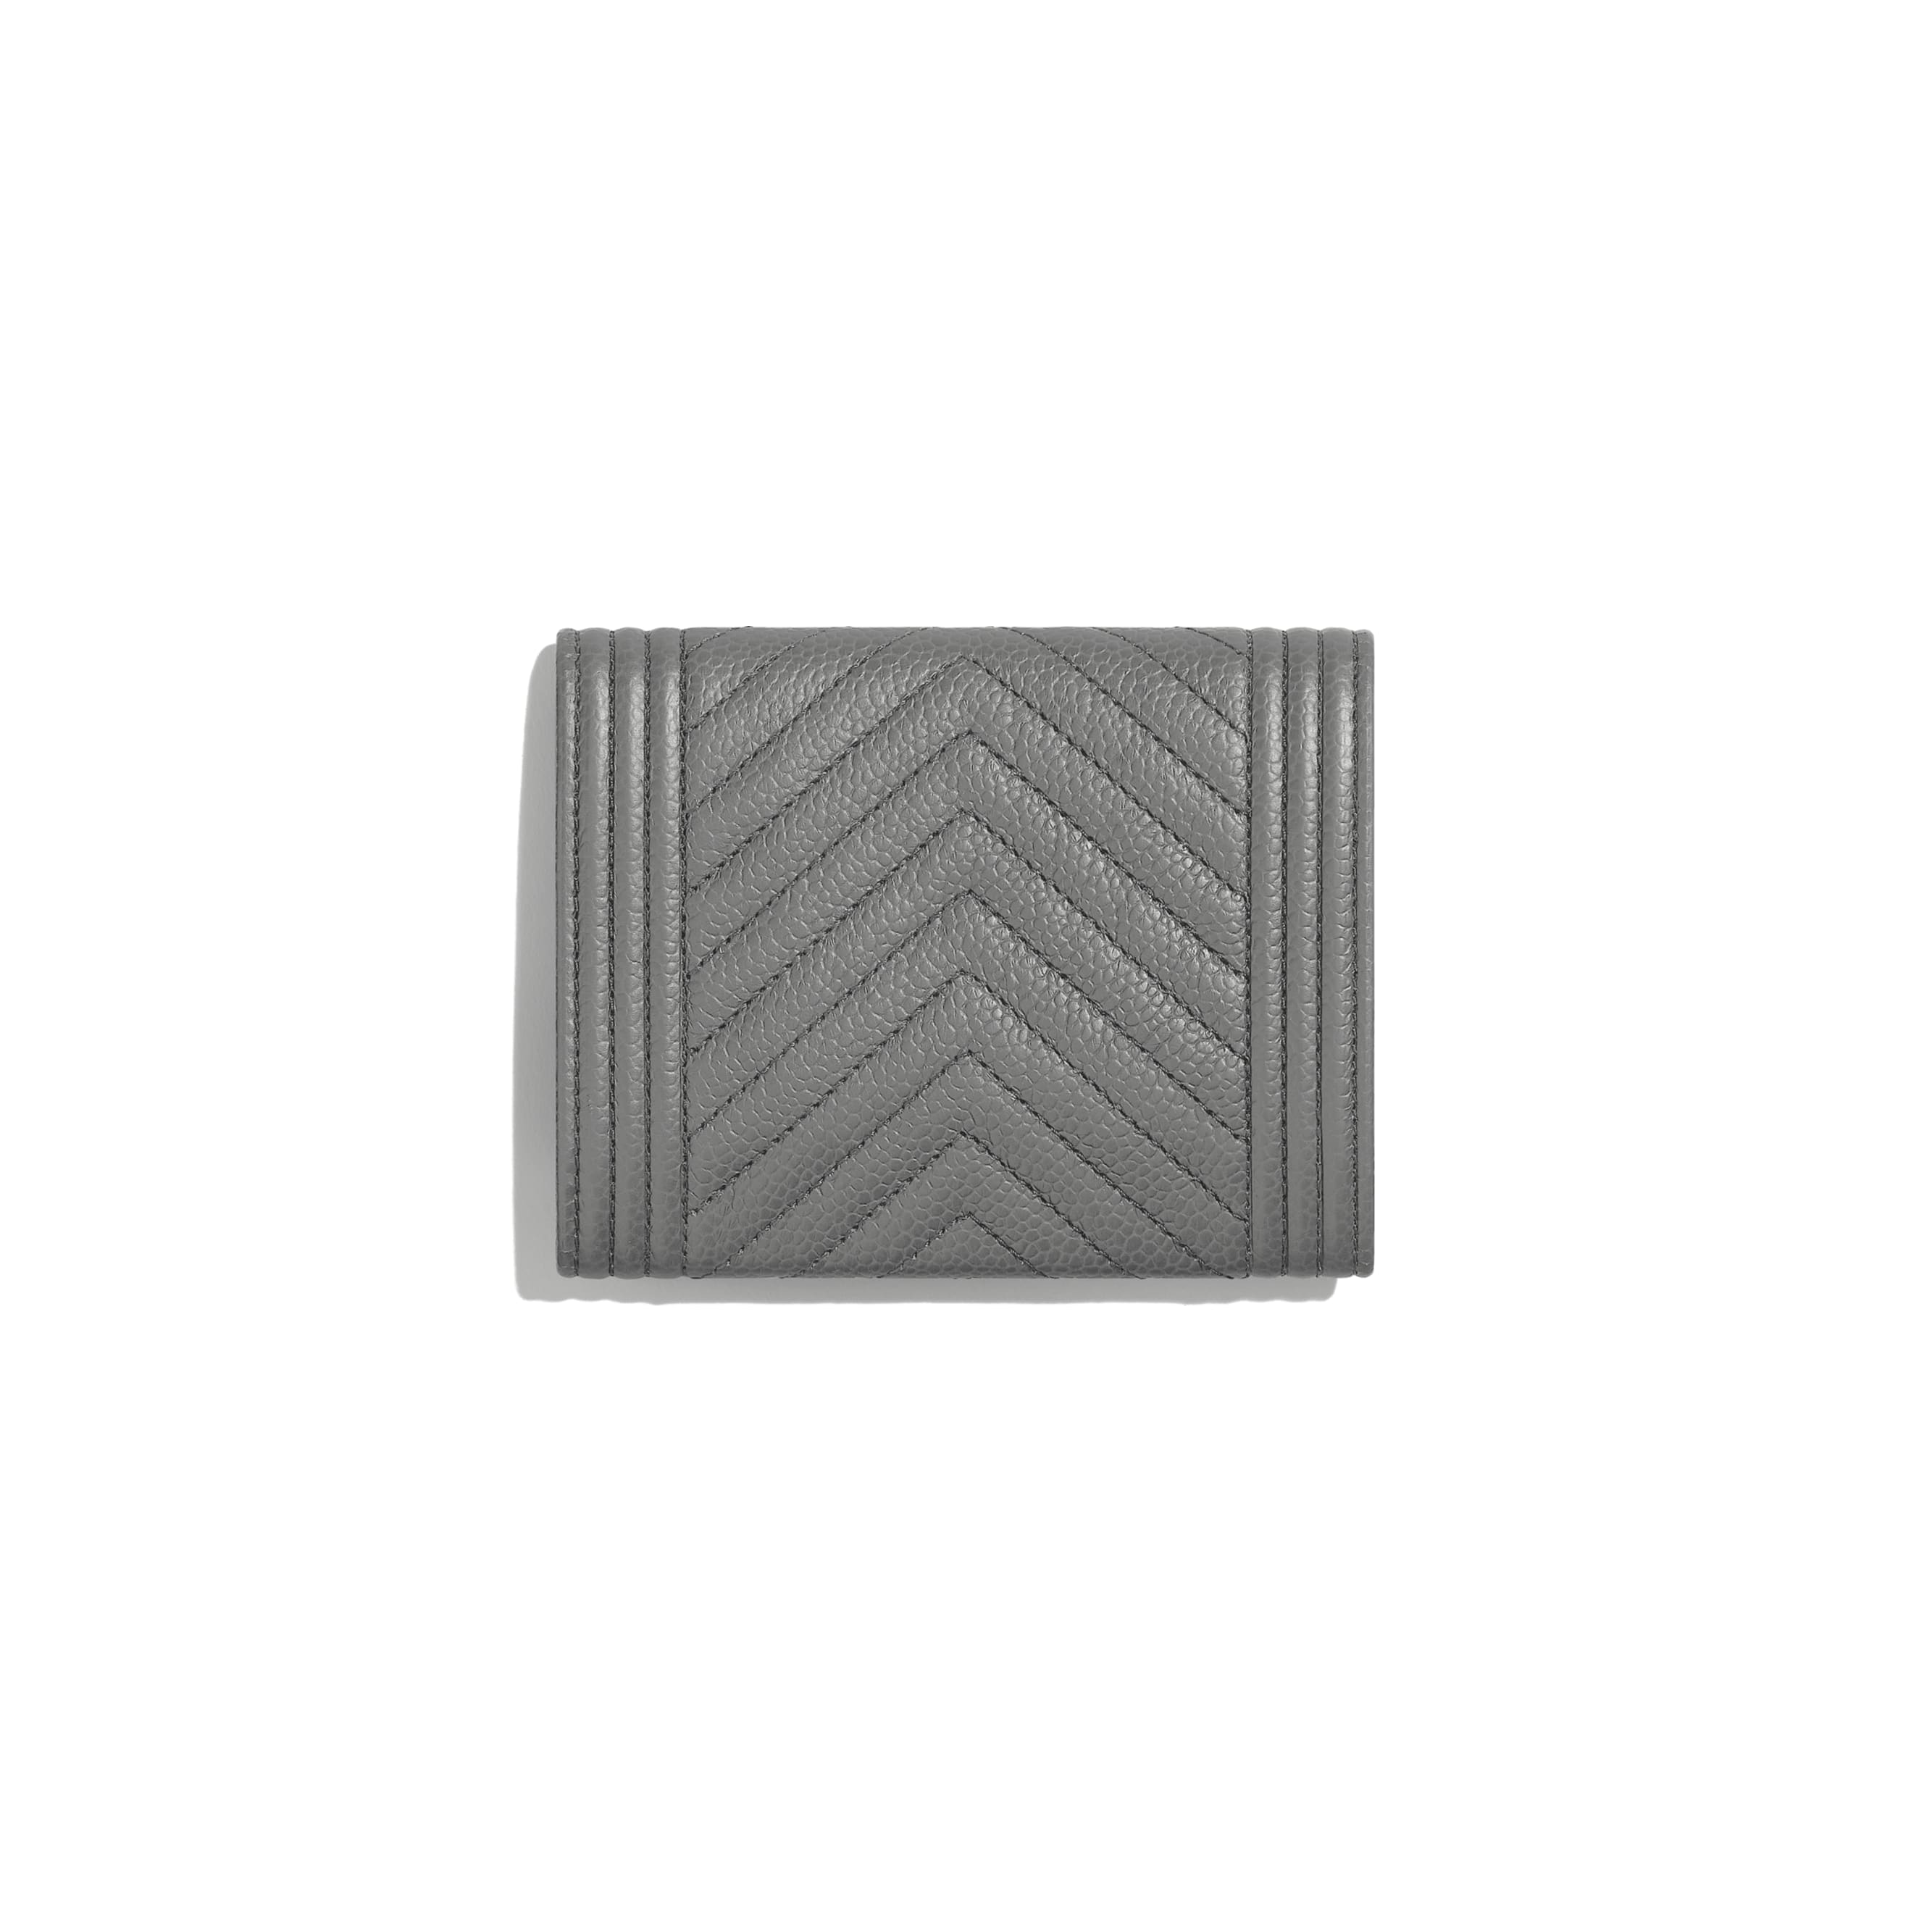 BOY CHANEL Flap Coin Purse - Grey - Grained Calfskin & Ruthenium-Finish Metal - CHANEL - Alternative view - see standard sized version